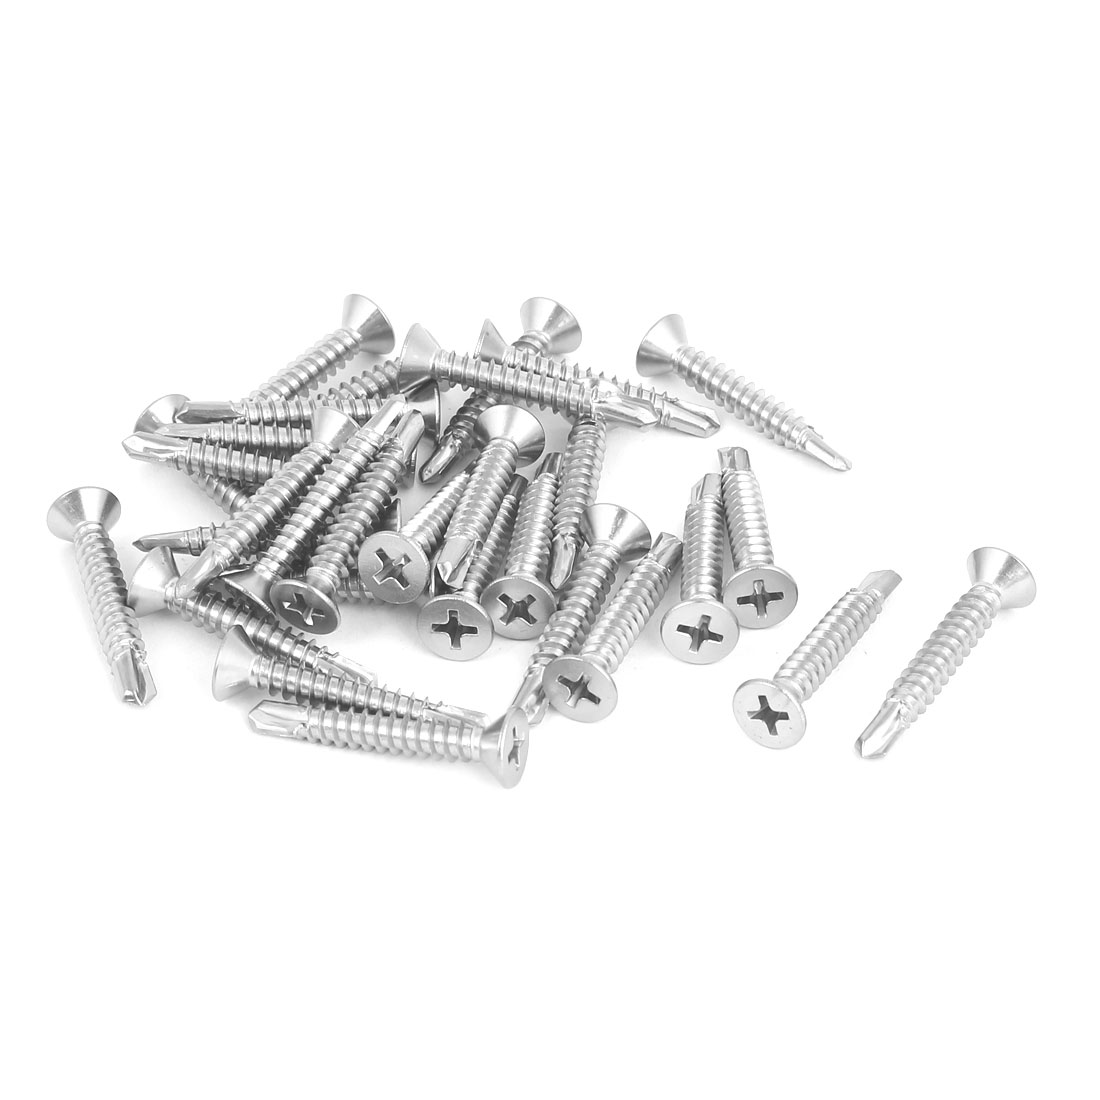 M4.8 x 32mm 410 Stainless Steel Countersunk Head Self Drilling Screws 30 Pcs